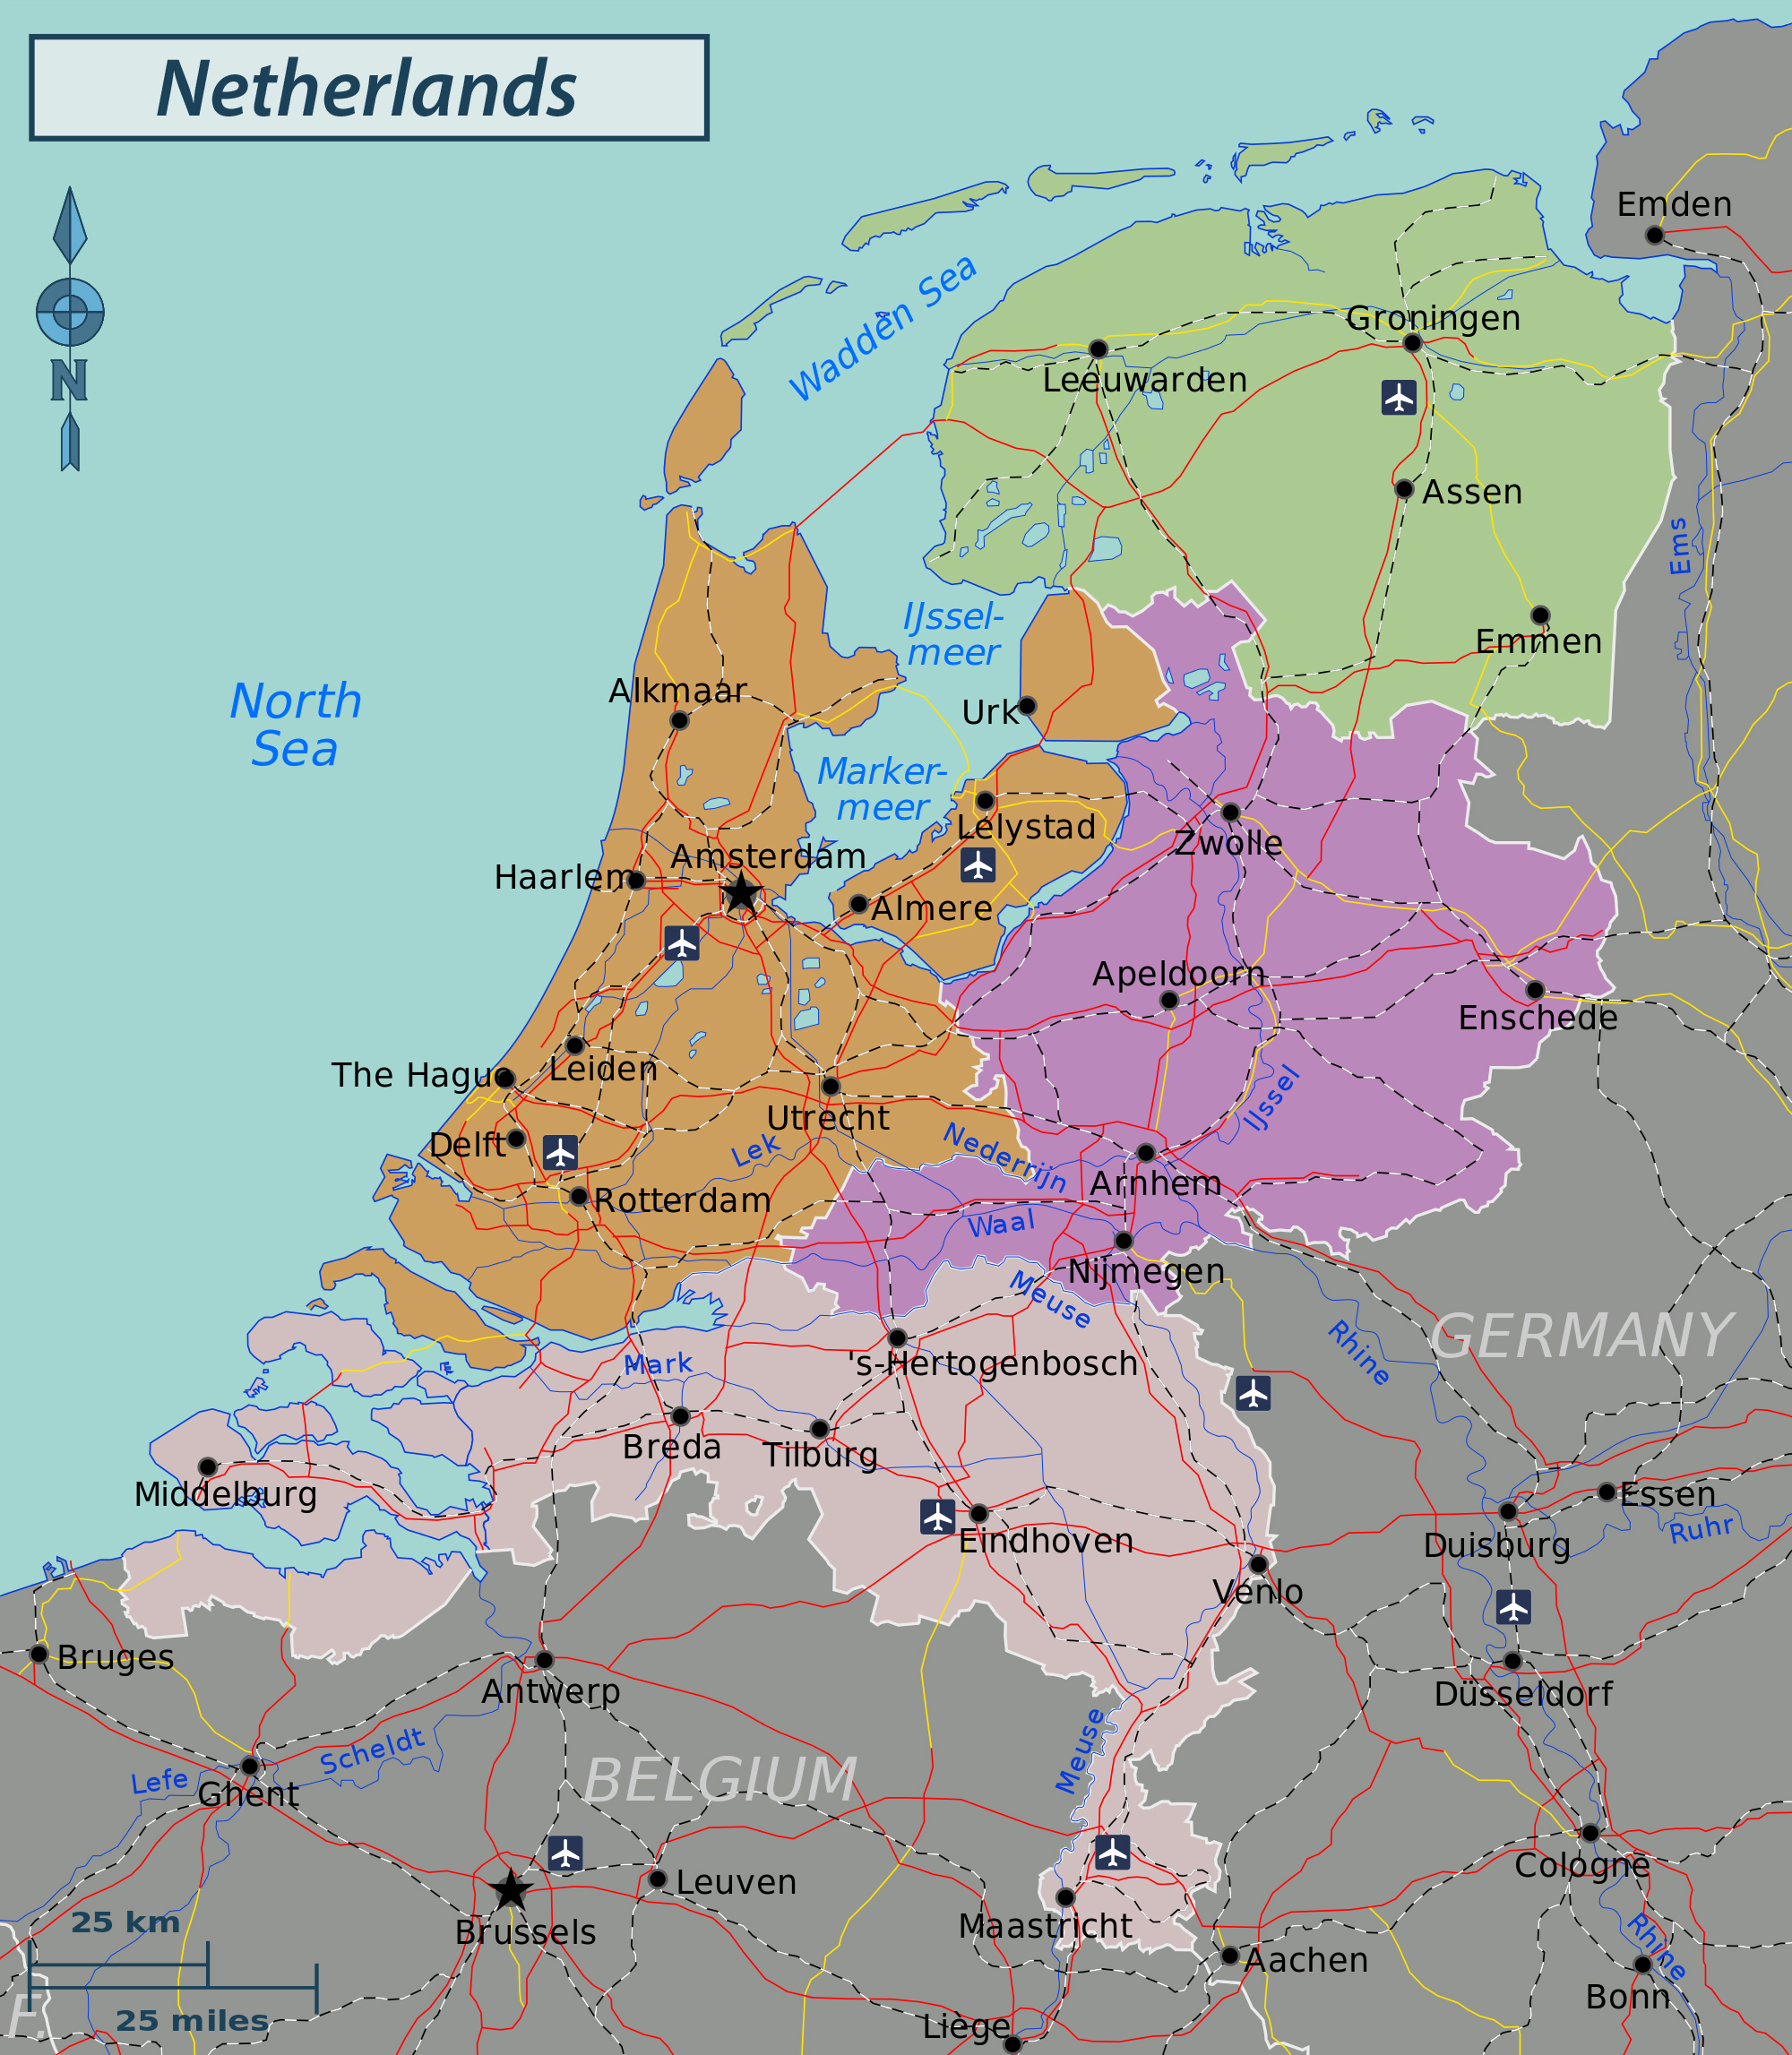 Netherlands Driving Map%0A Large detailed administrative and road map of Netherlands Holland